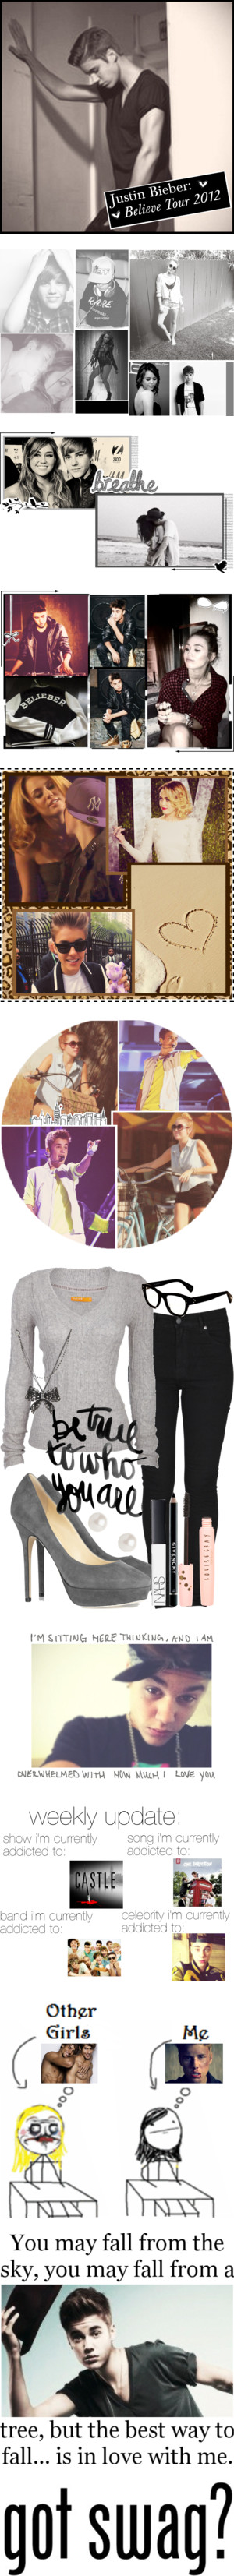 """""""Cute."""" by trustinurdreams ❤ liked on Polyvore"""